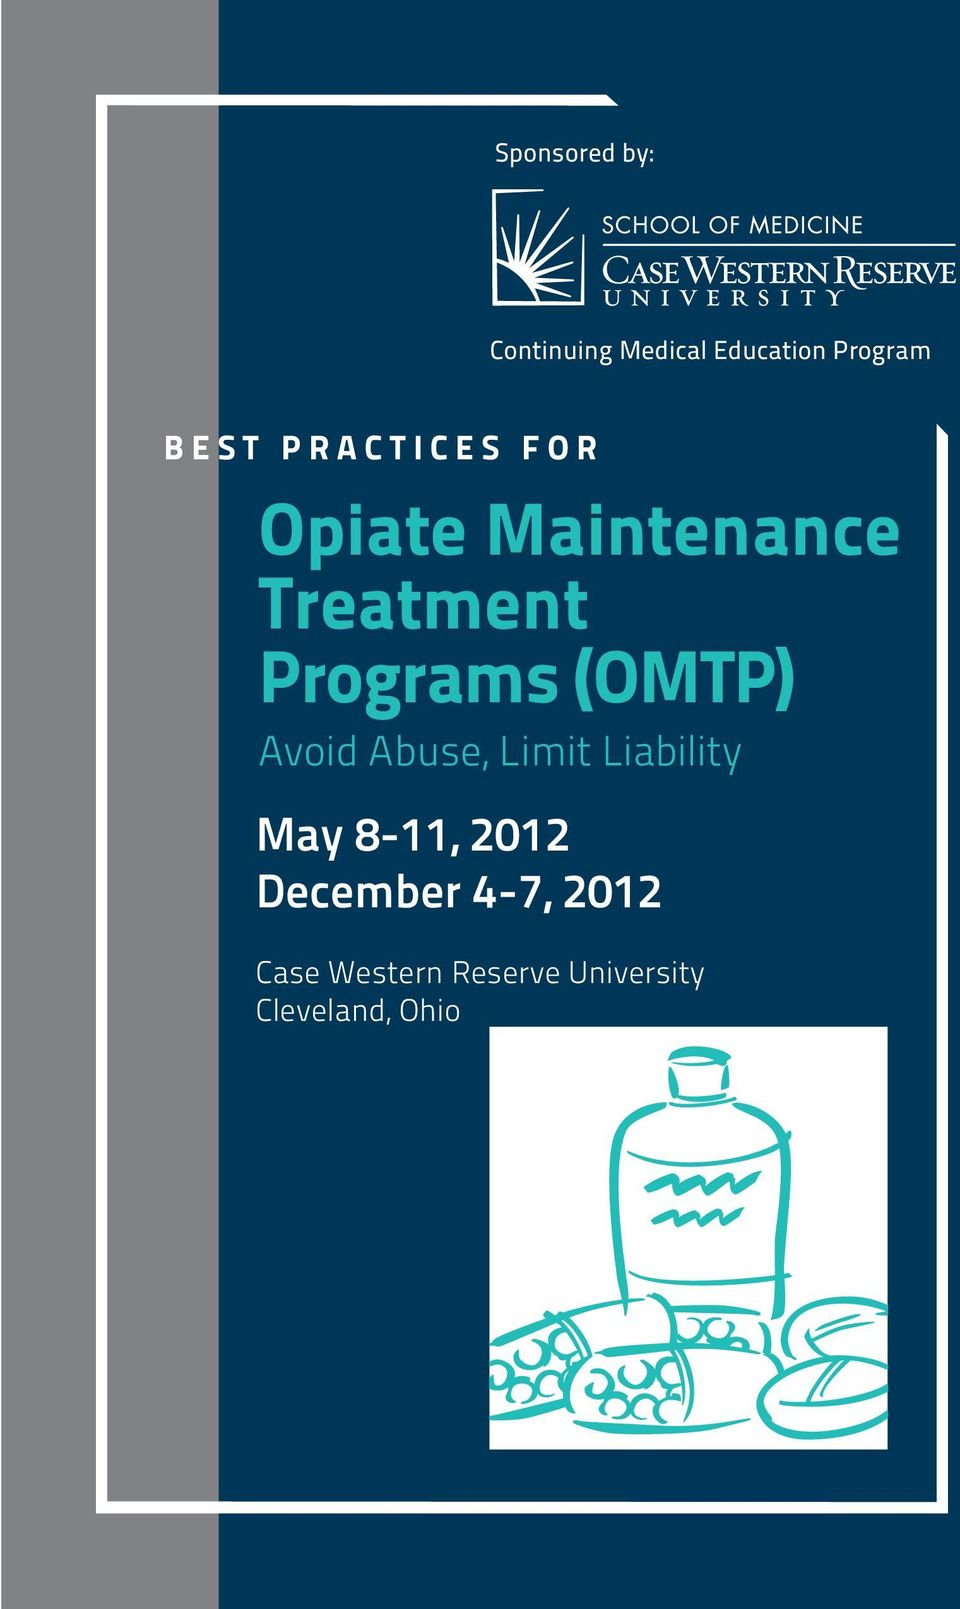 (OMTP) Avoid Abuse, Limit Liability May 8-11, 2012